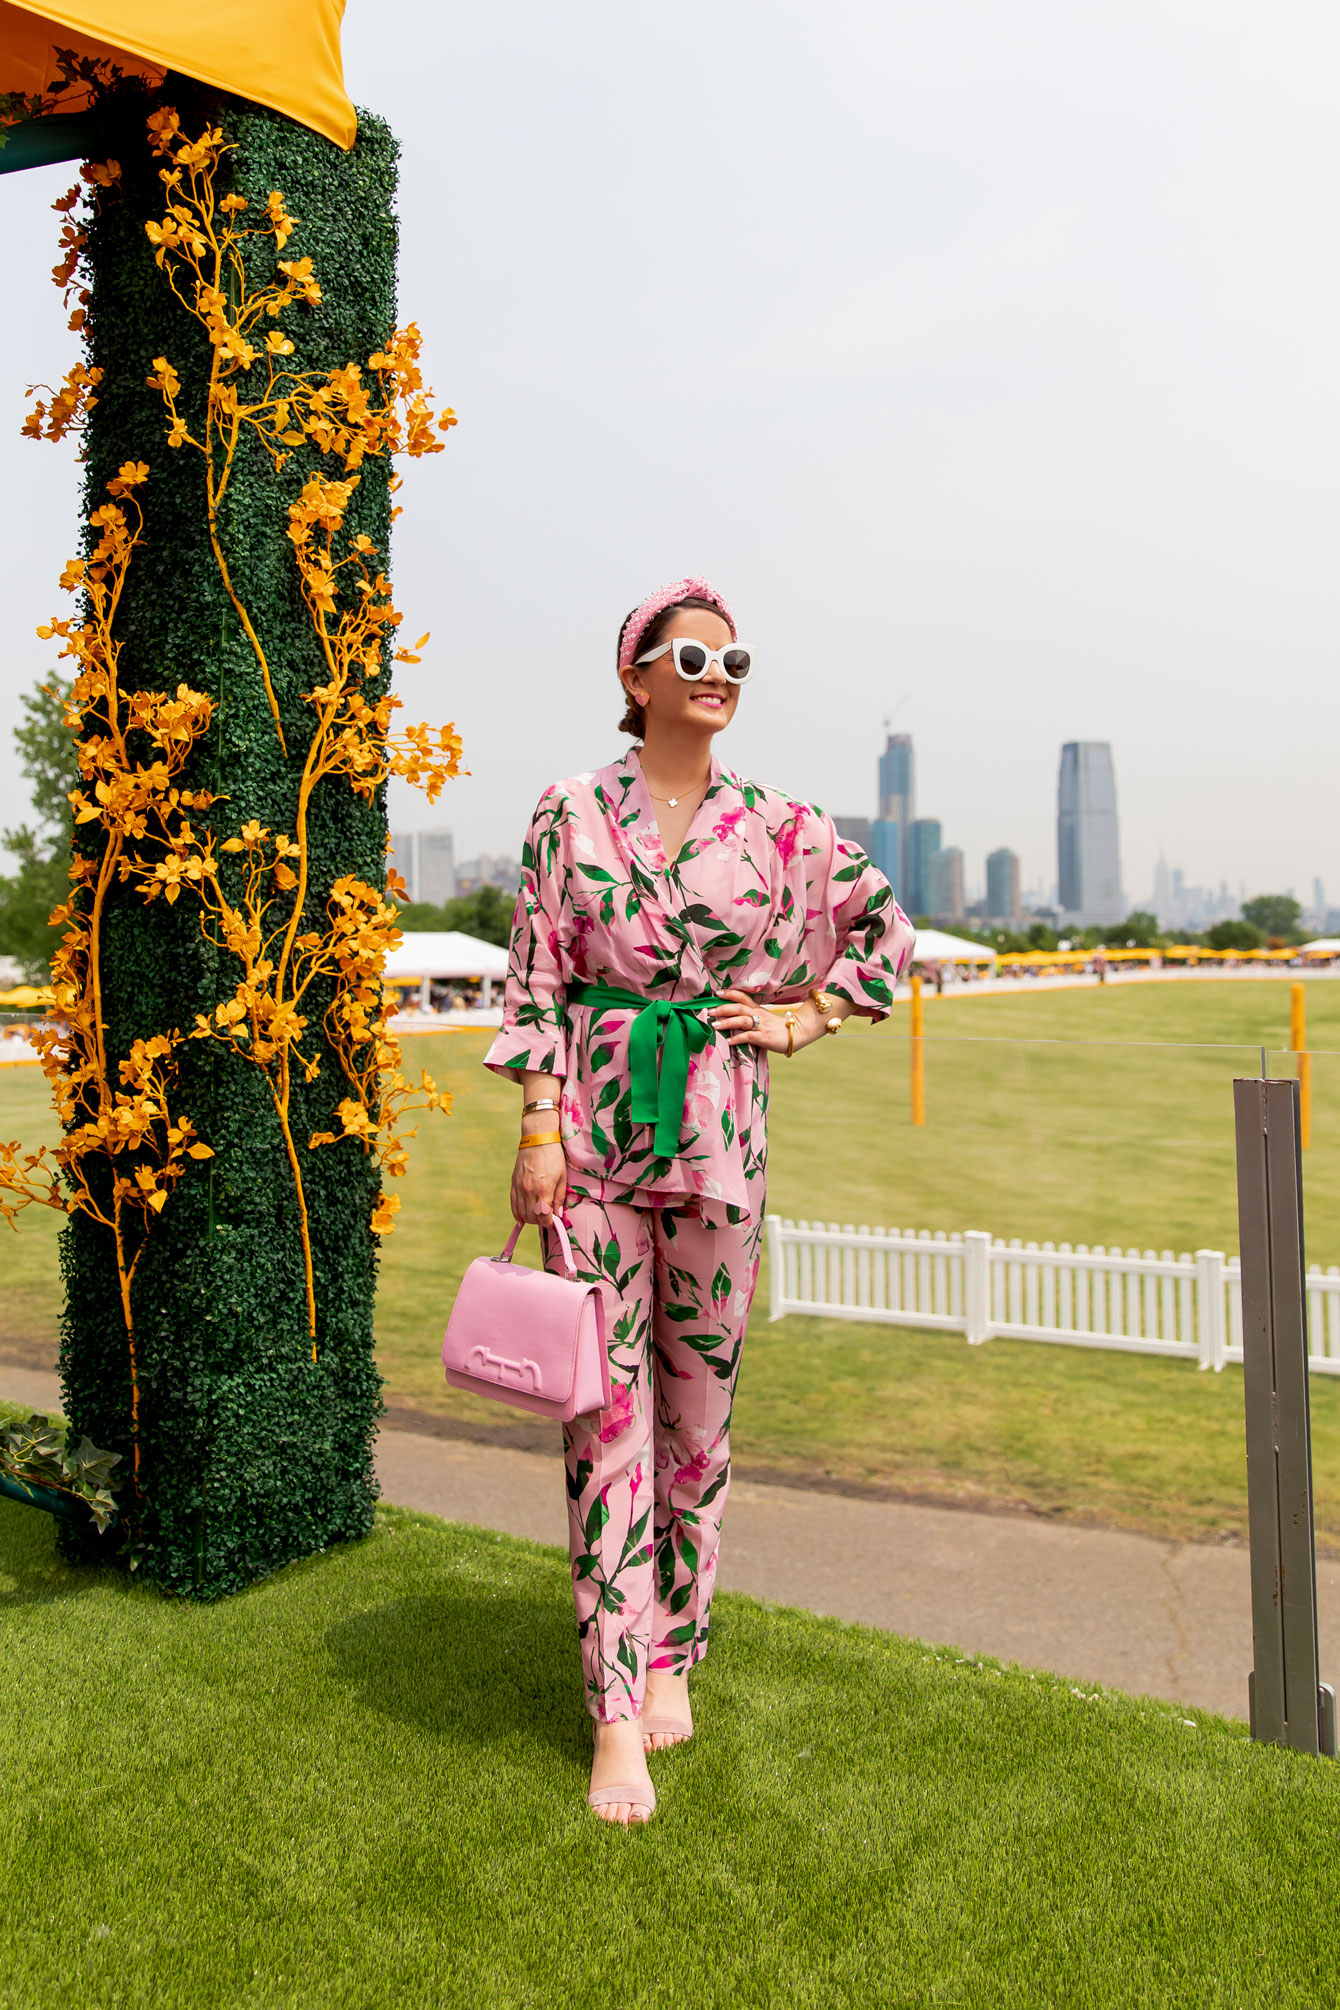 Veuve Clicquot Polo Classic VIP Invitation